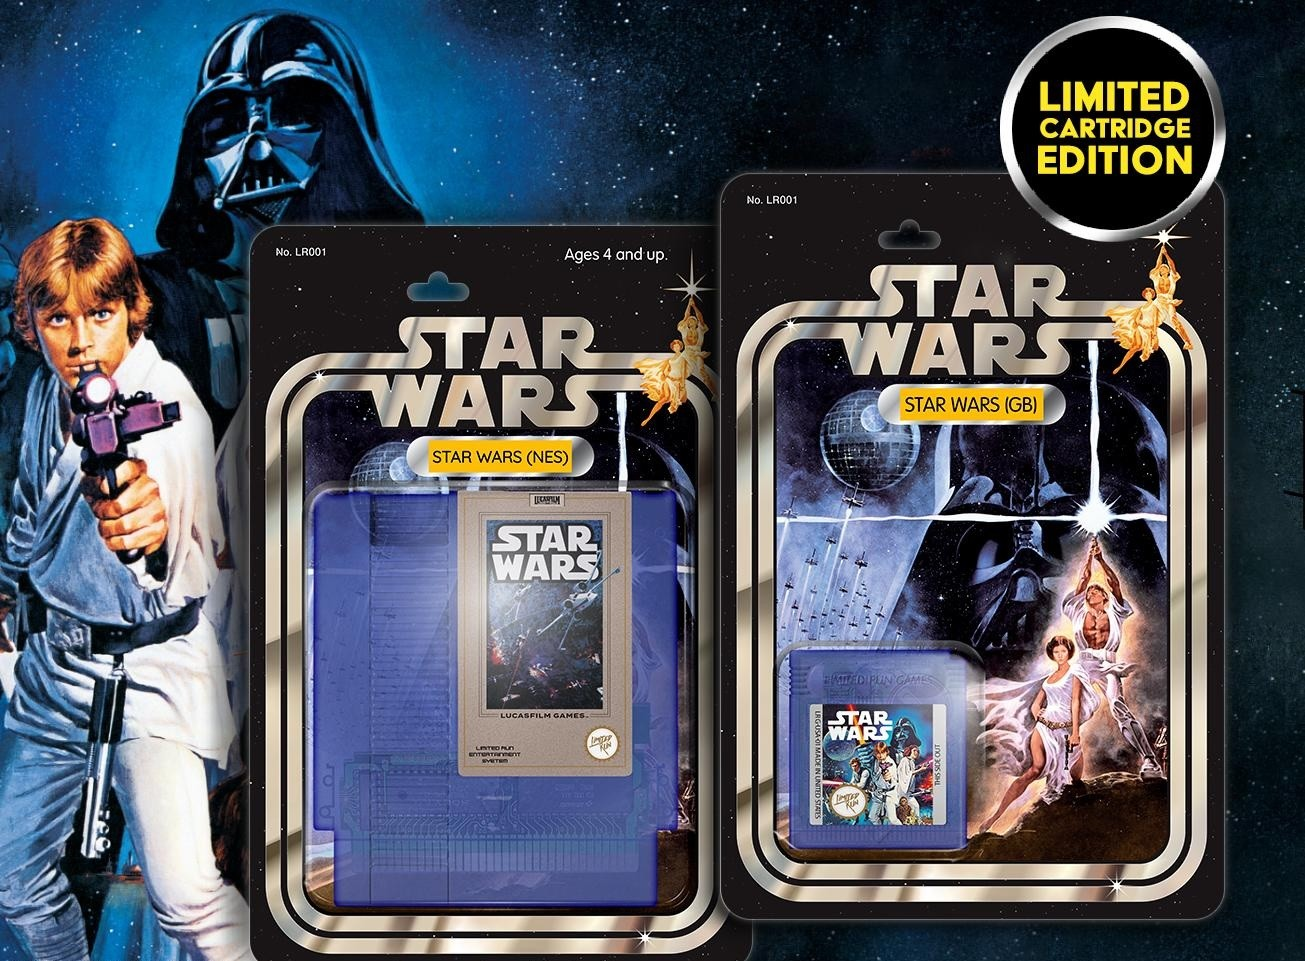 Limited Run Games to re-release Star Wars for NES and Game Boy - Neowin